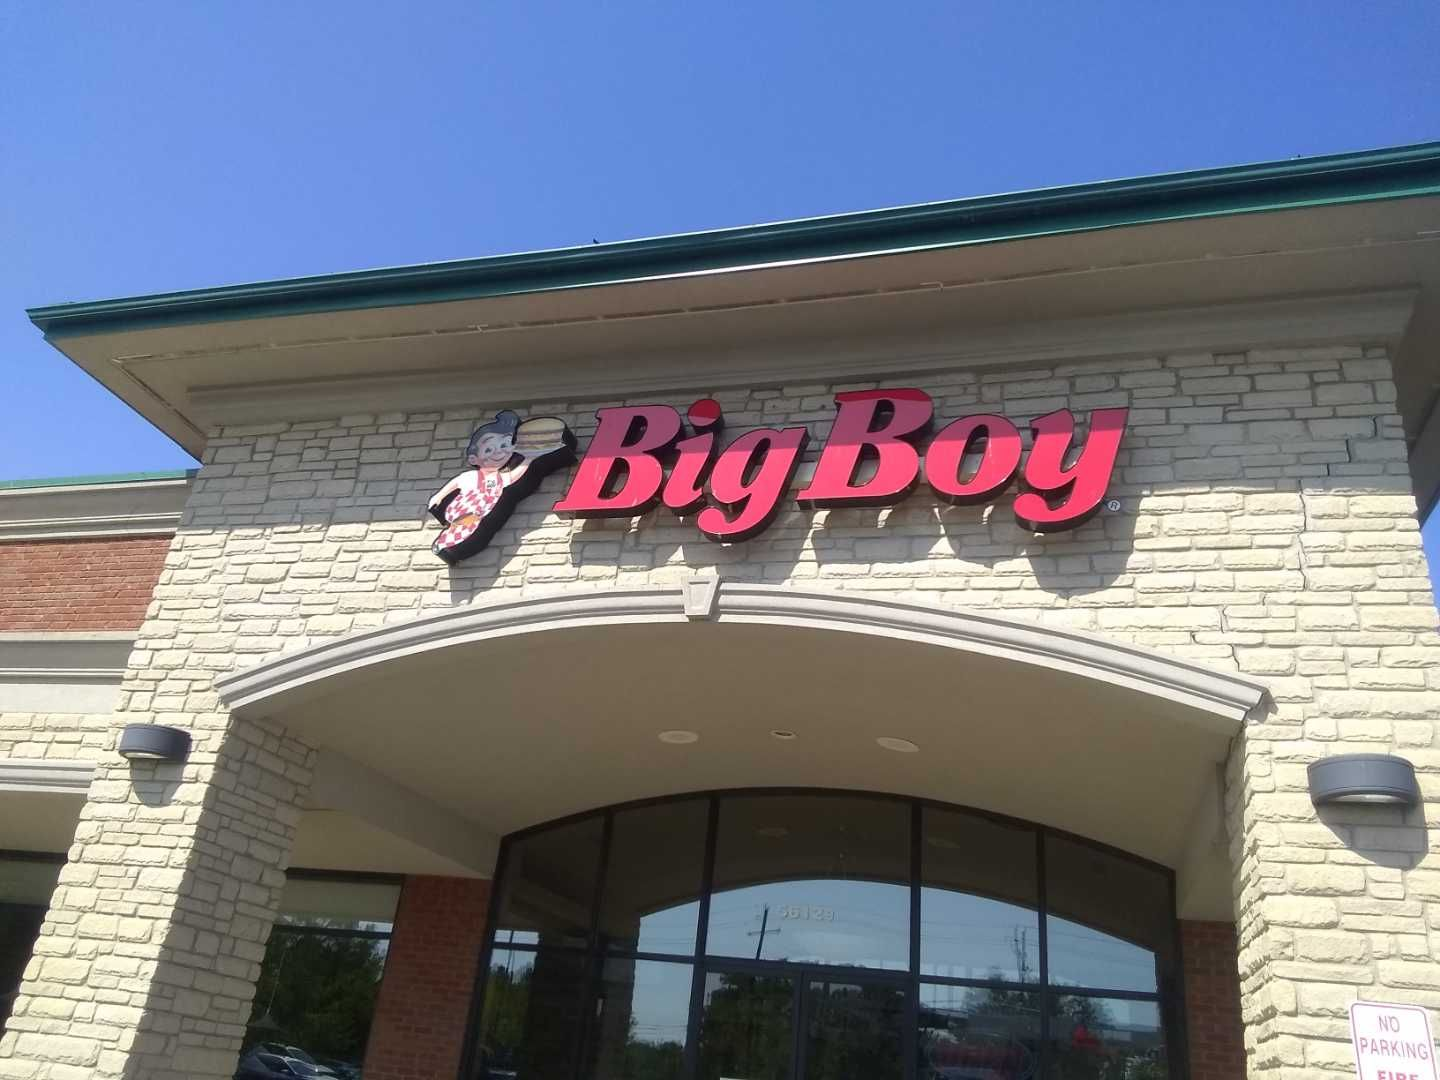 Big Boy channel letters exterior sign on raceway